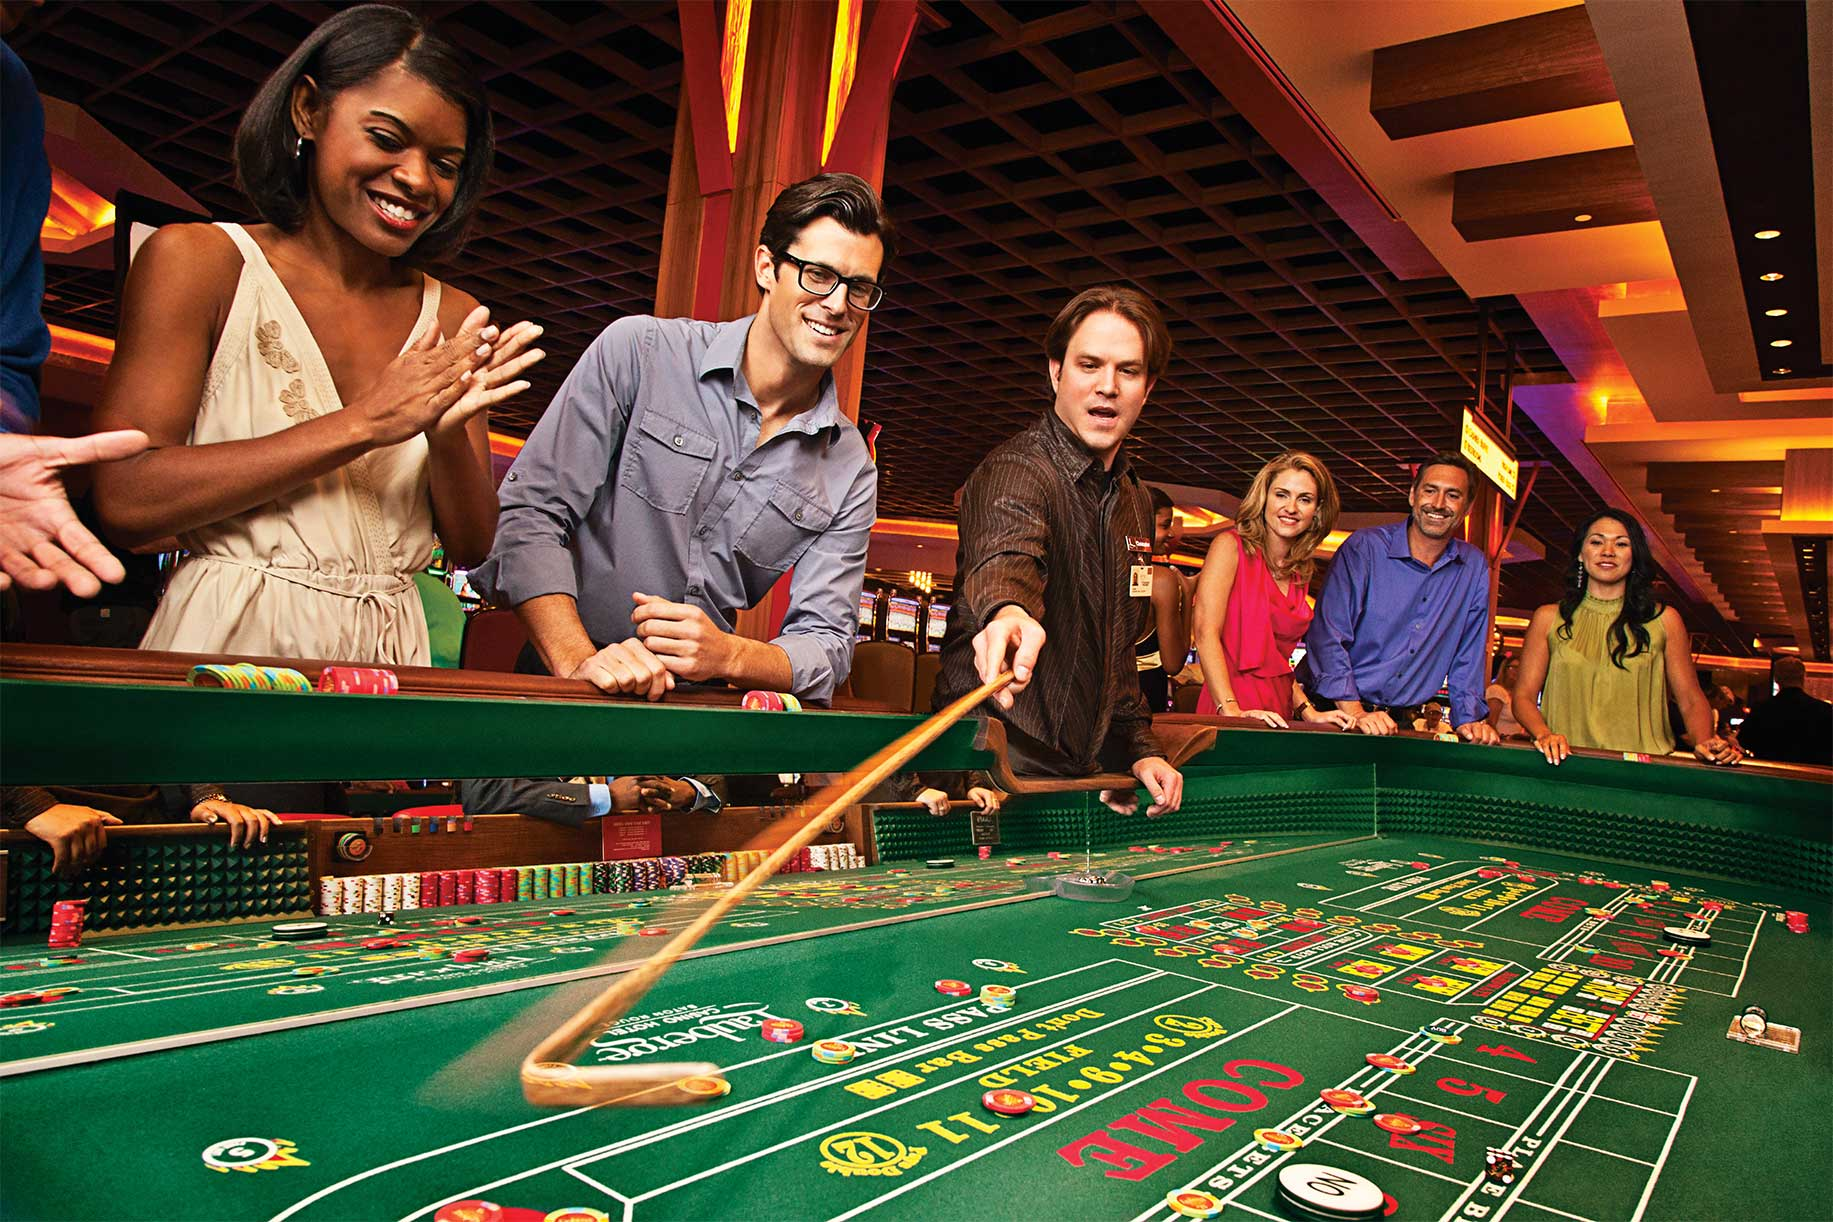 Unusual Article Uncovers The Misleading Practices Of Gambling